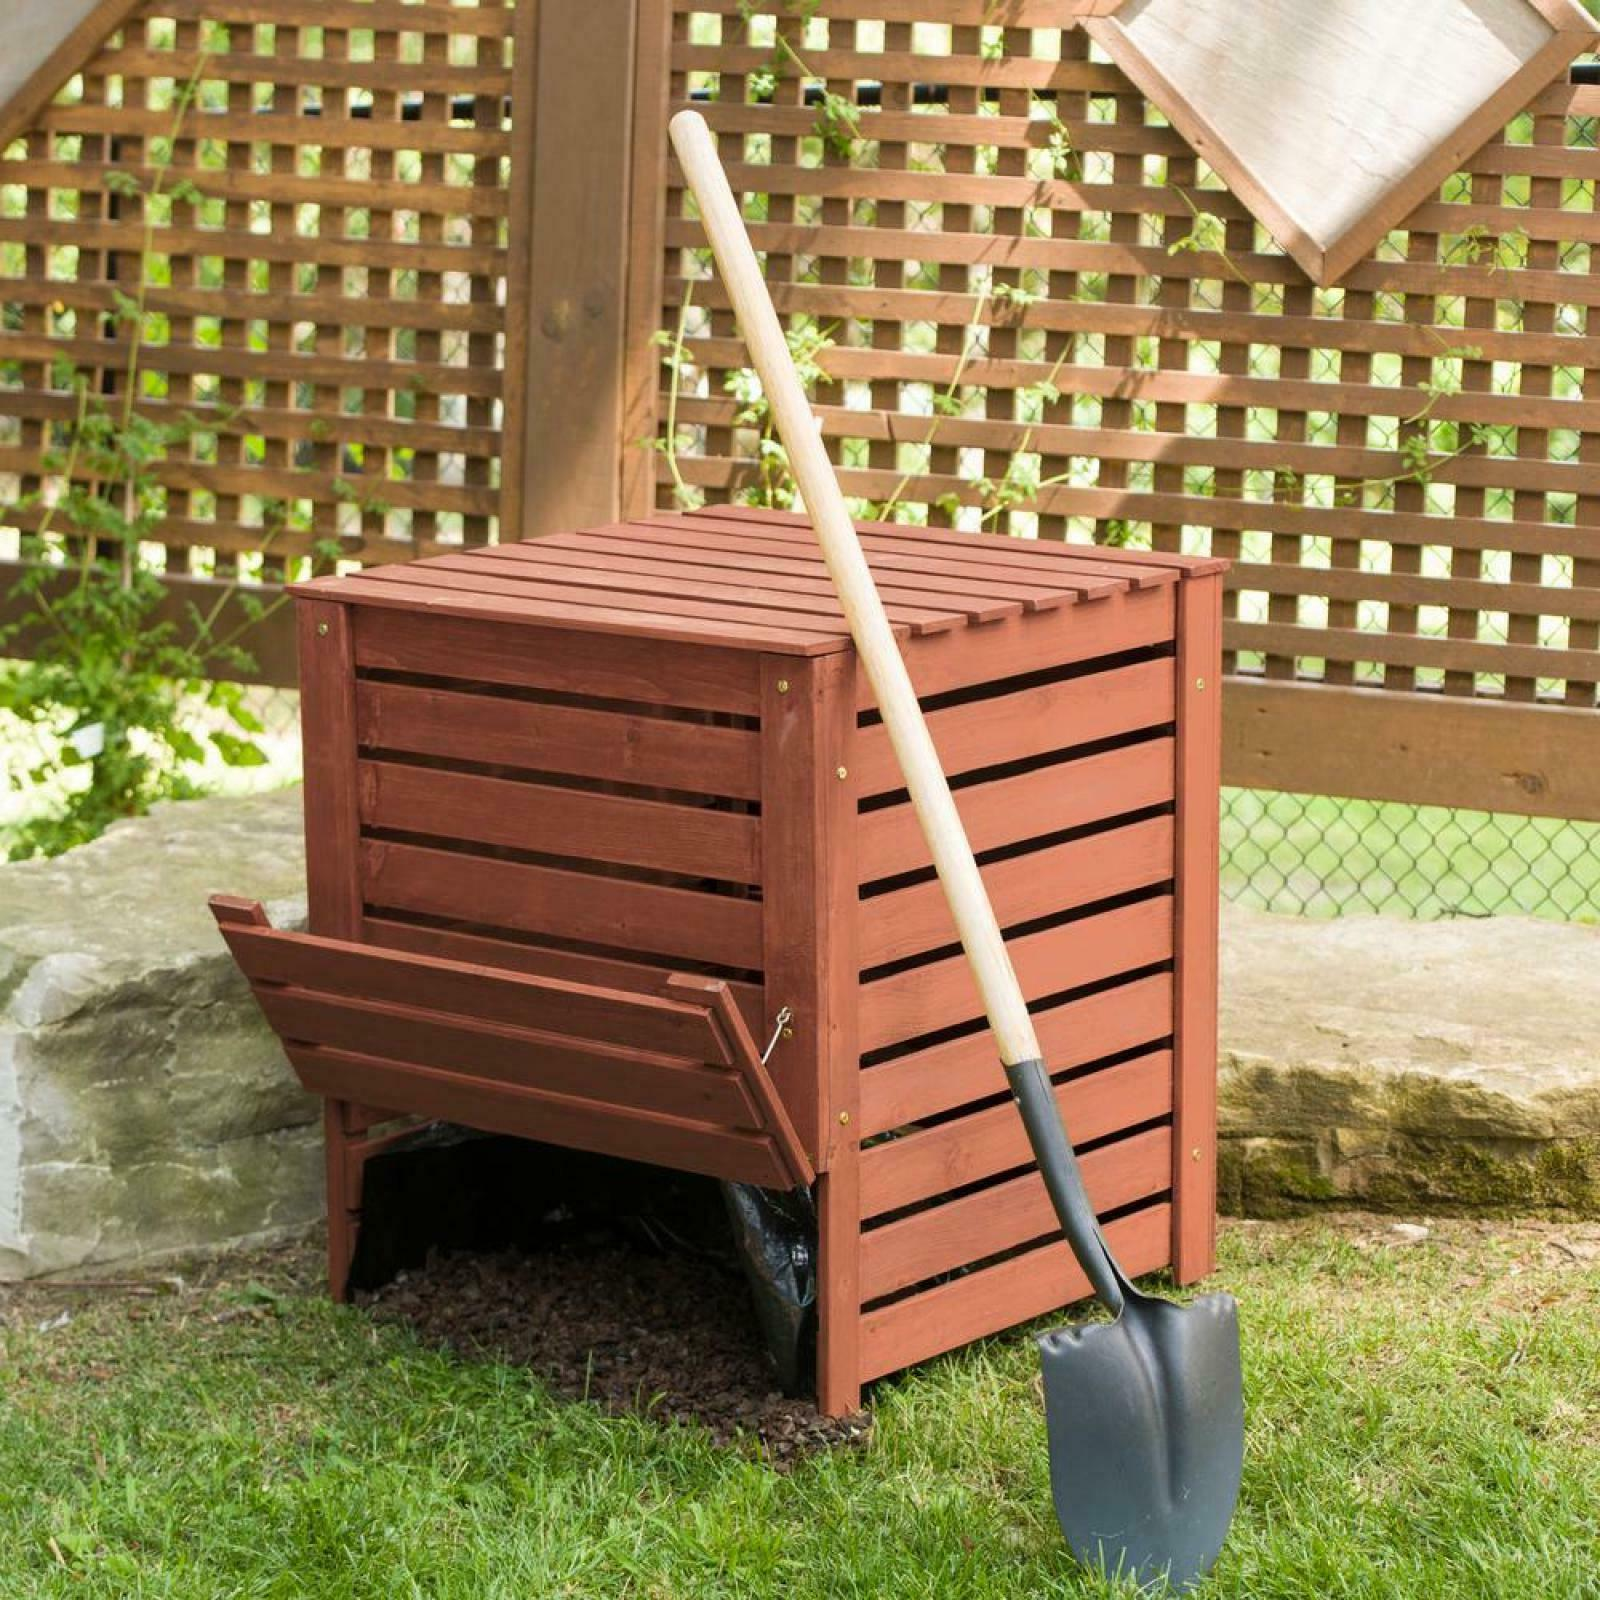 Compost Bin Box Wood Storage Weather Proof Durable Water Res